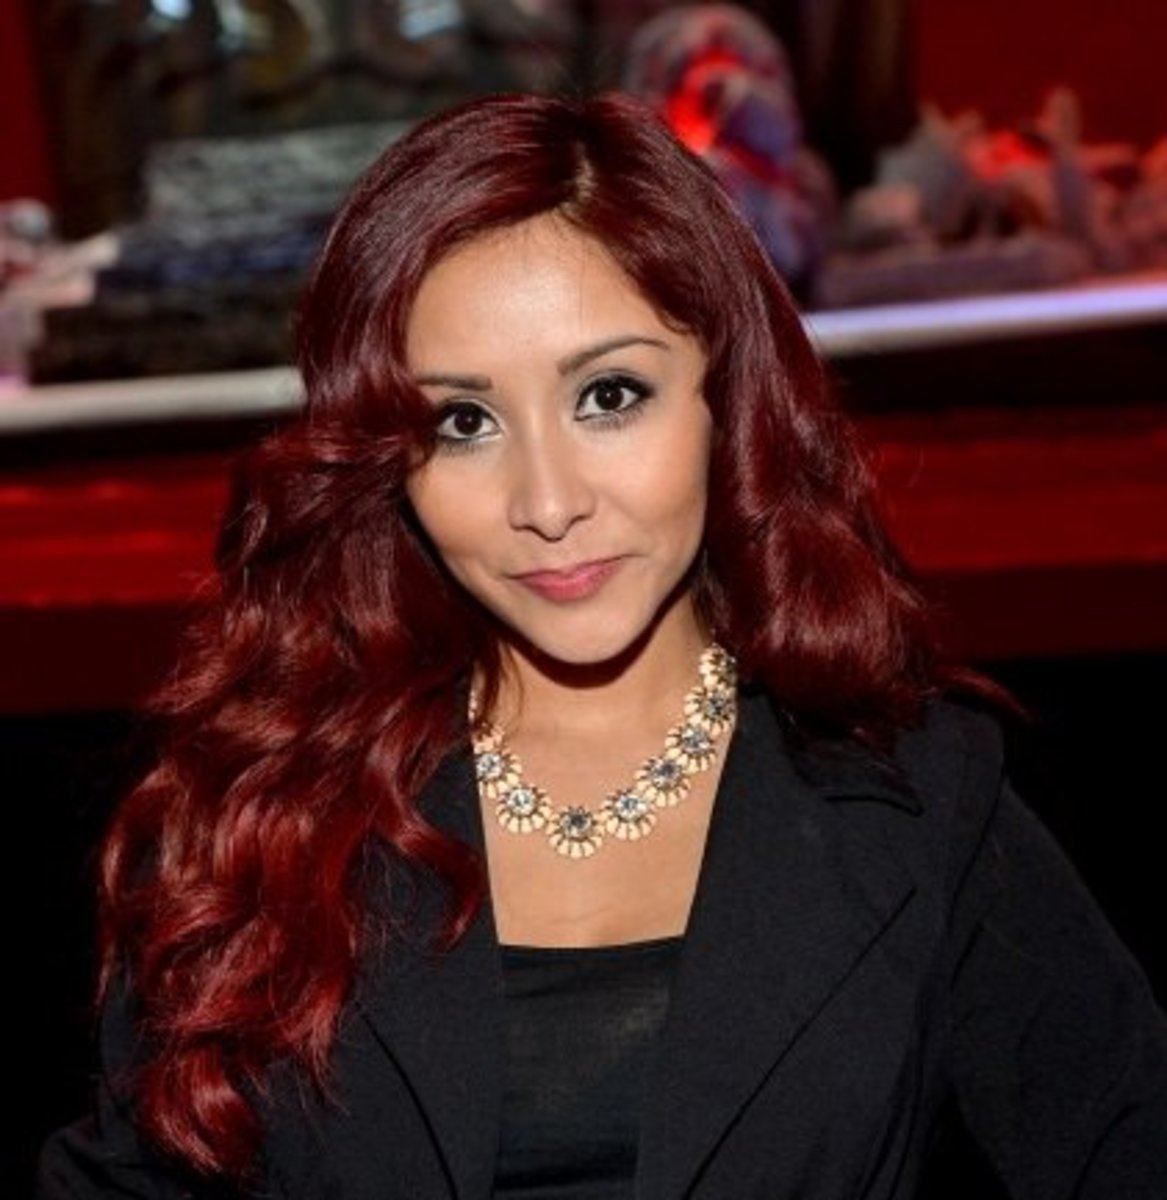 Snooki with Mahogany Hair and Olive Skin Tone